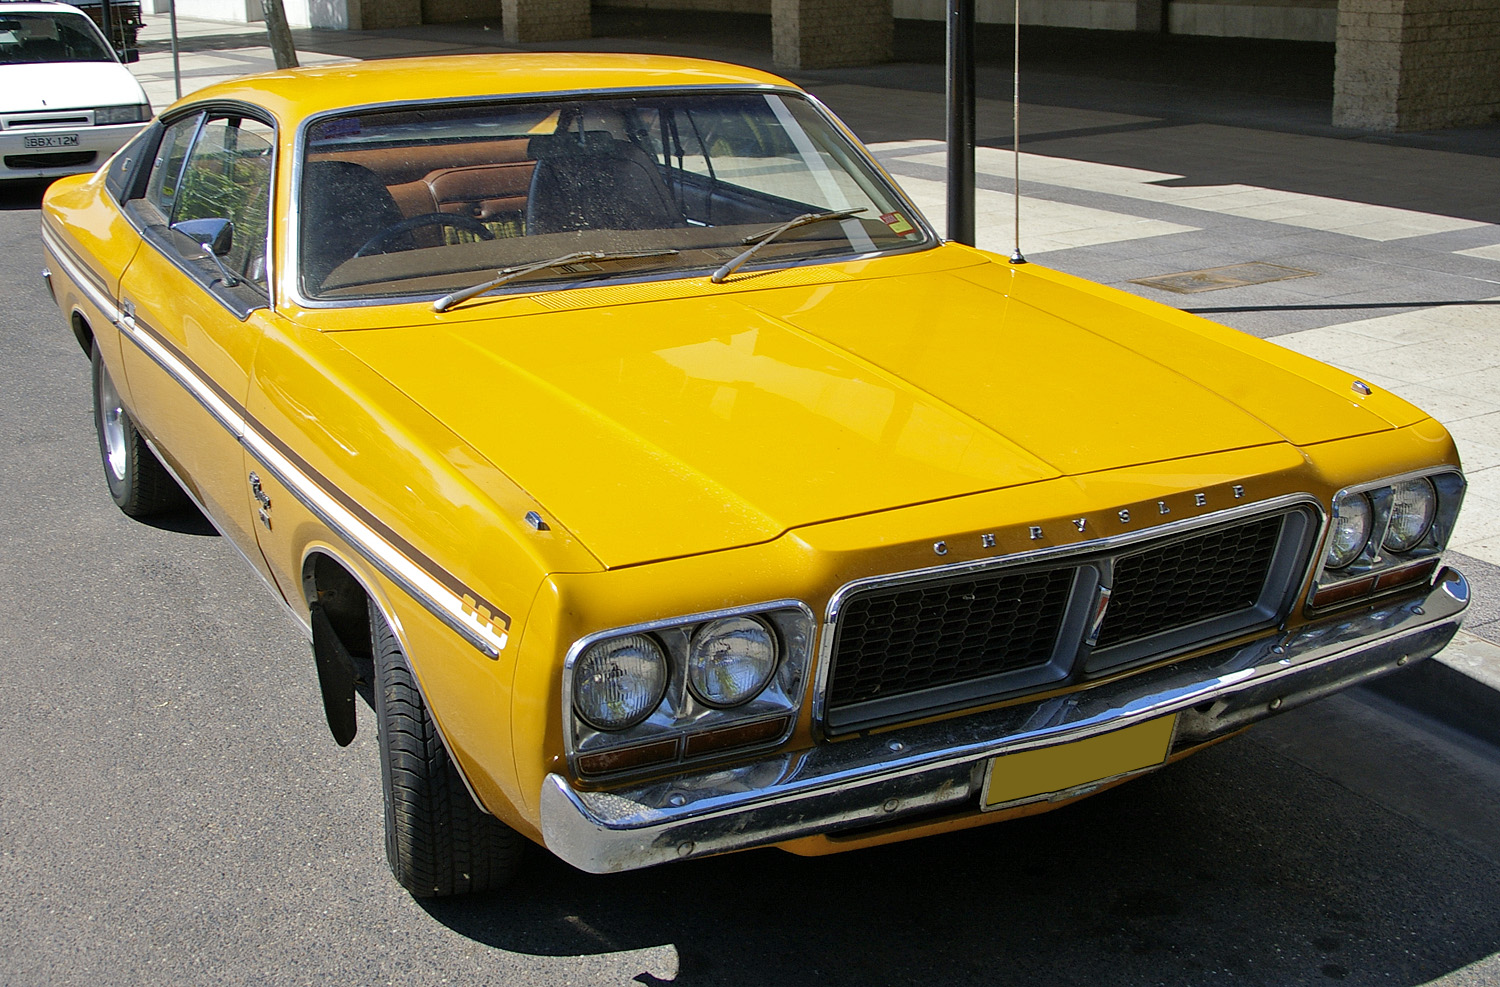 1975 Chrysler Charger #1